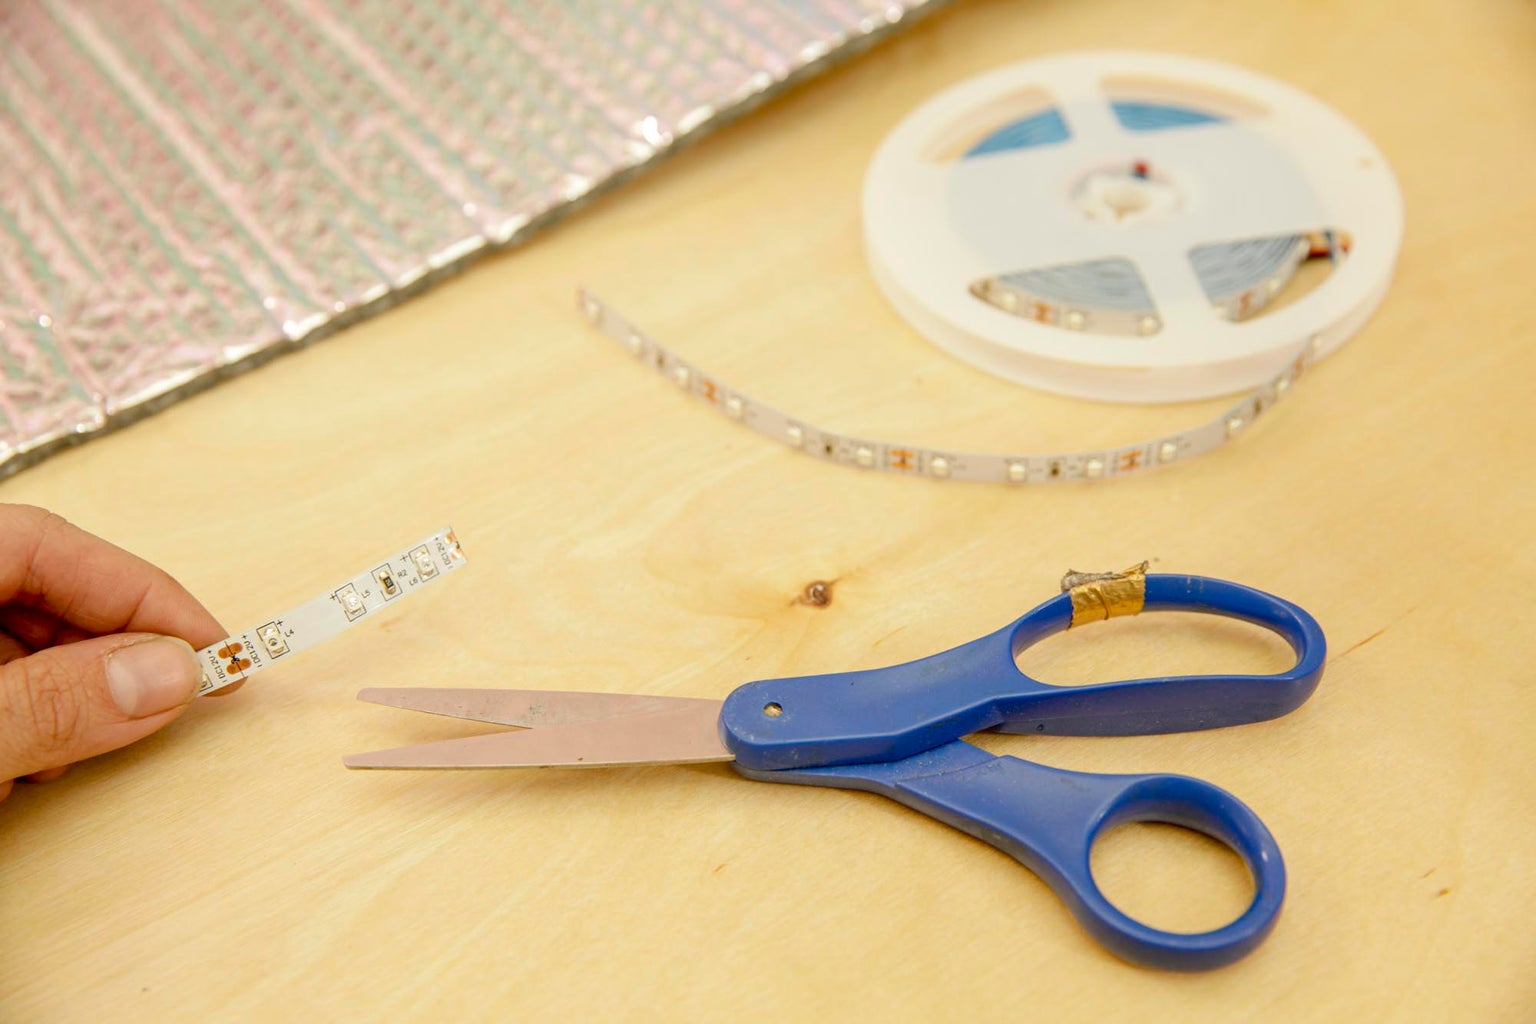 Cutting and Placing the LED Strips